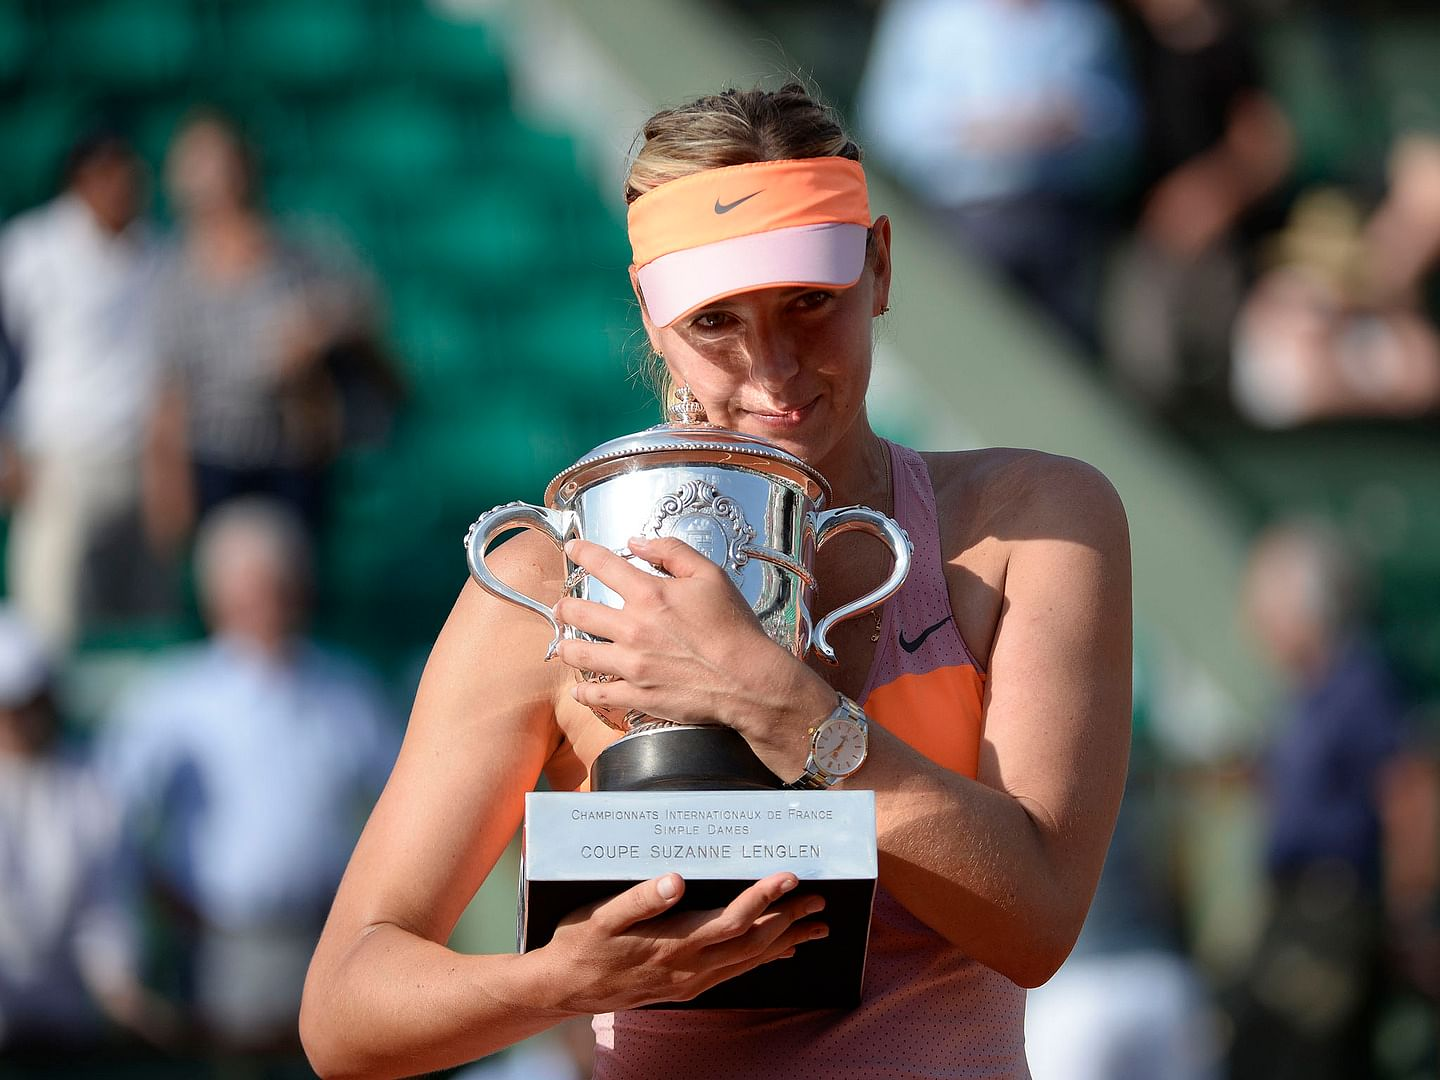 Maria Sharapova: A true champion